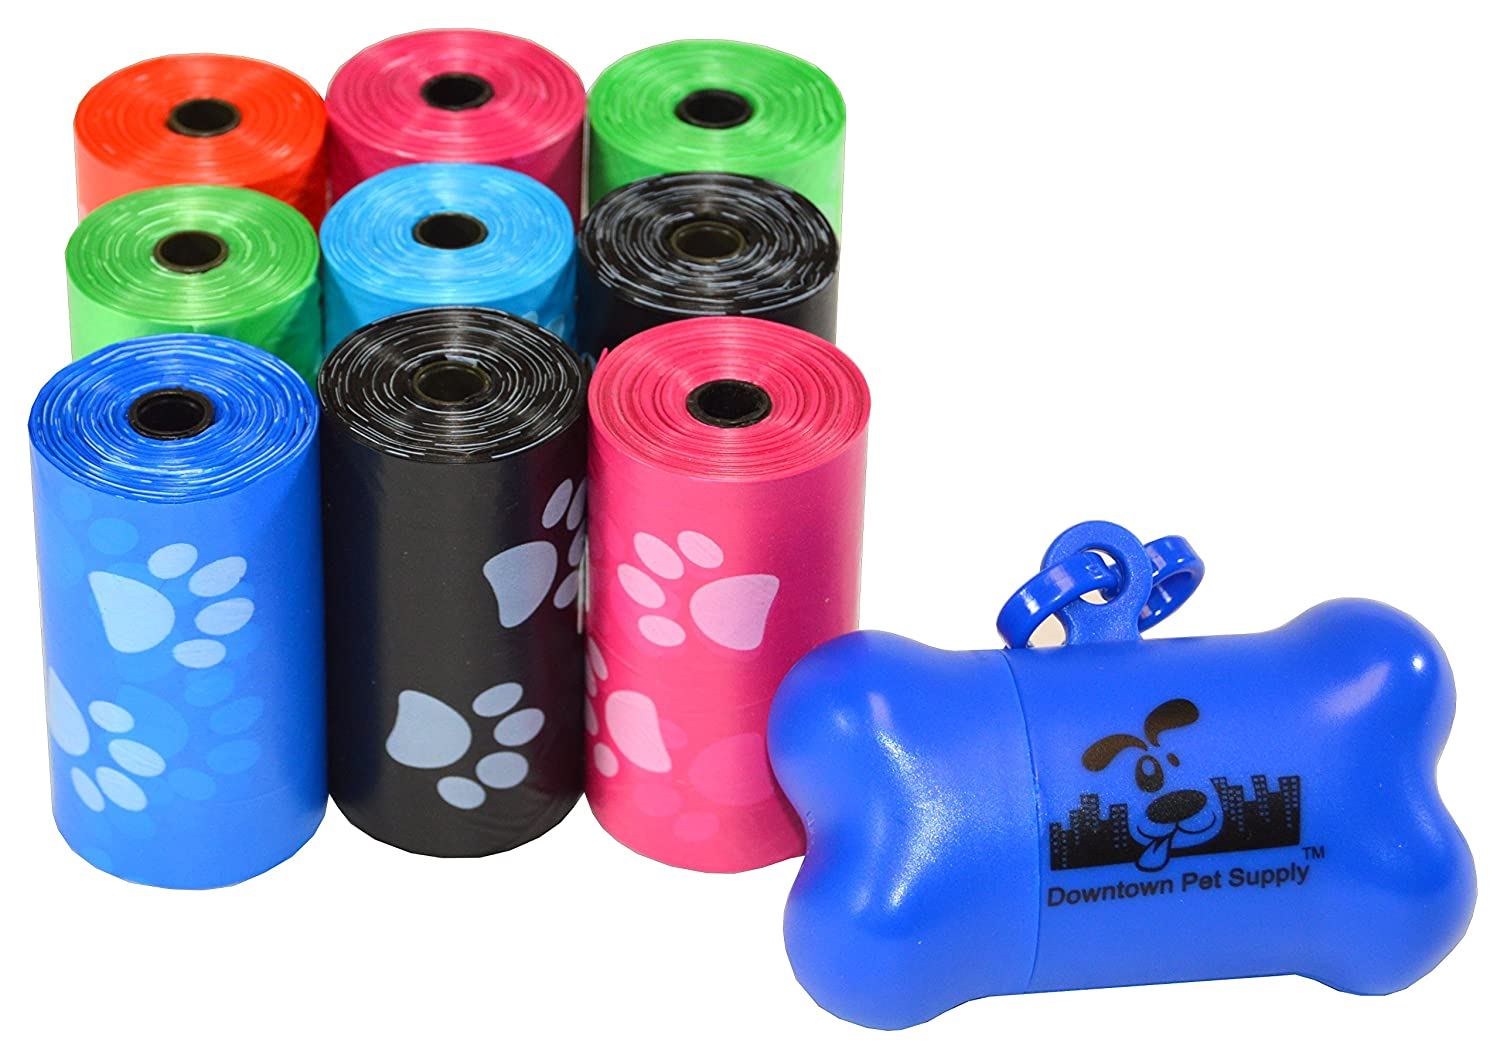 Downtown Pet Supply 180, 220, 500, 700, 880, 960, 2200 Dog Pet Waste Poop Bags, Bulk roll,Clean up Refills-(Green, Blue, Purple, Red, Black, Pink,Rainbow of Colors or Paw Print)+Free Bone Dispenser